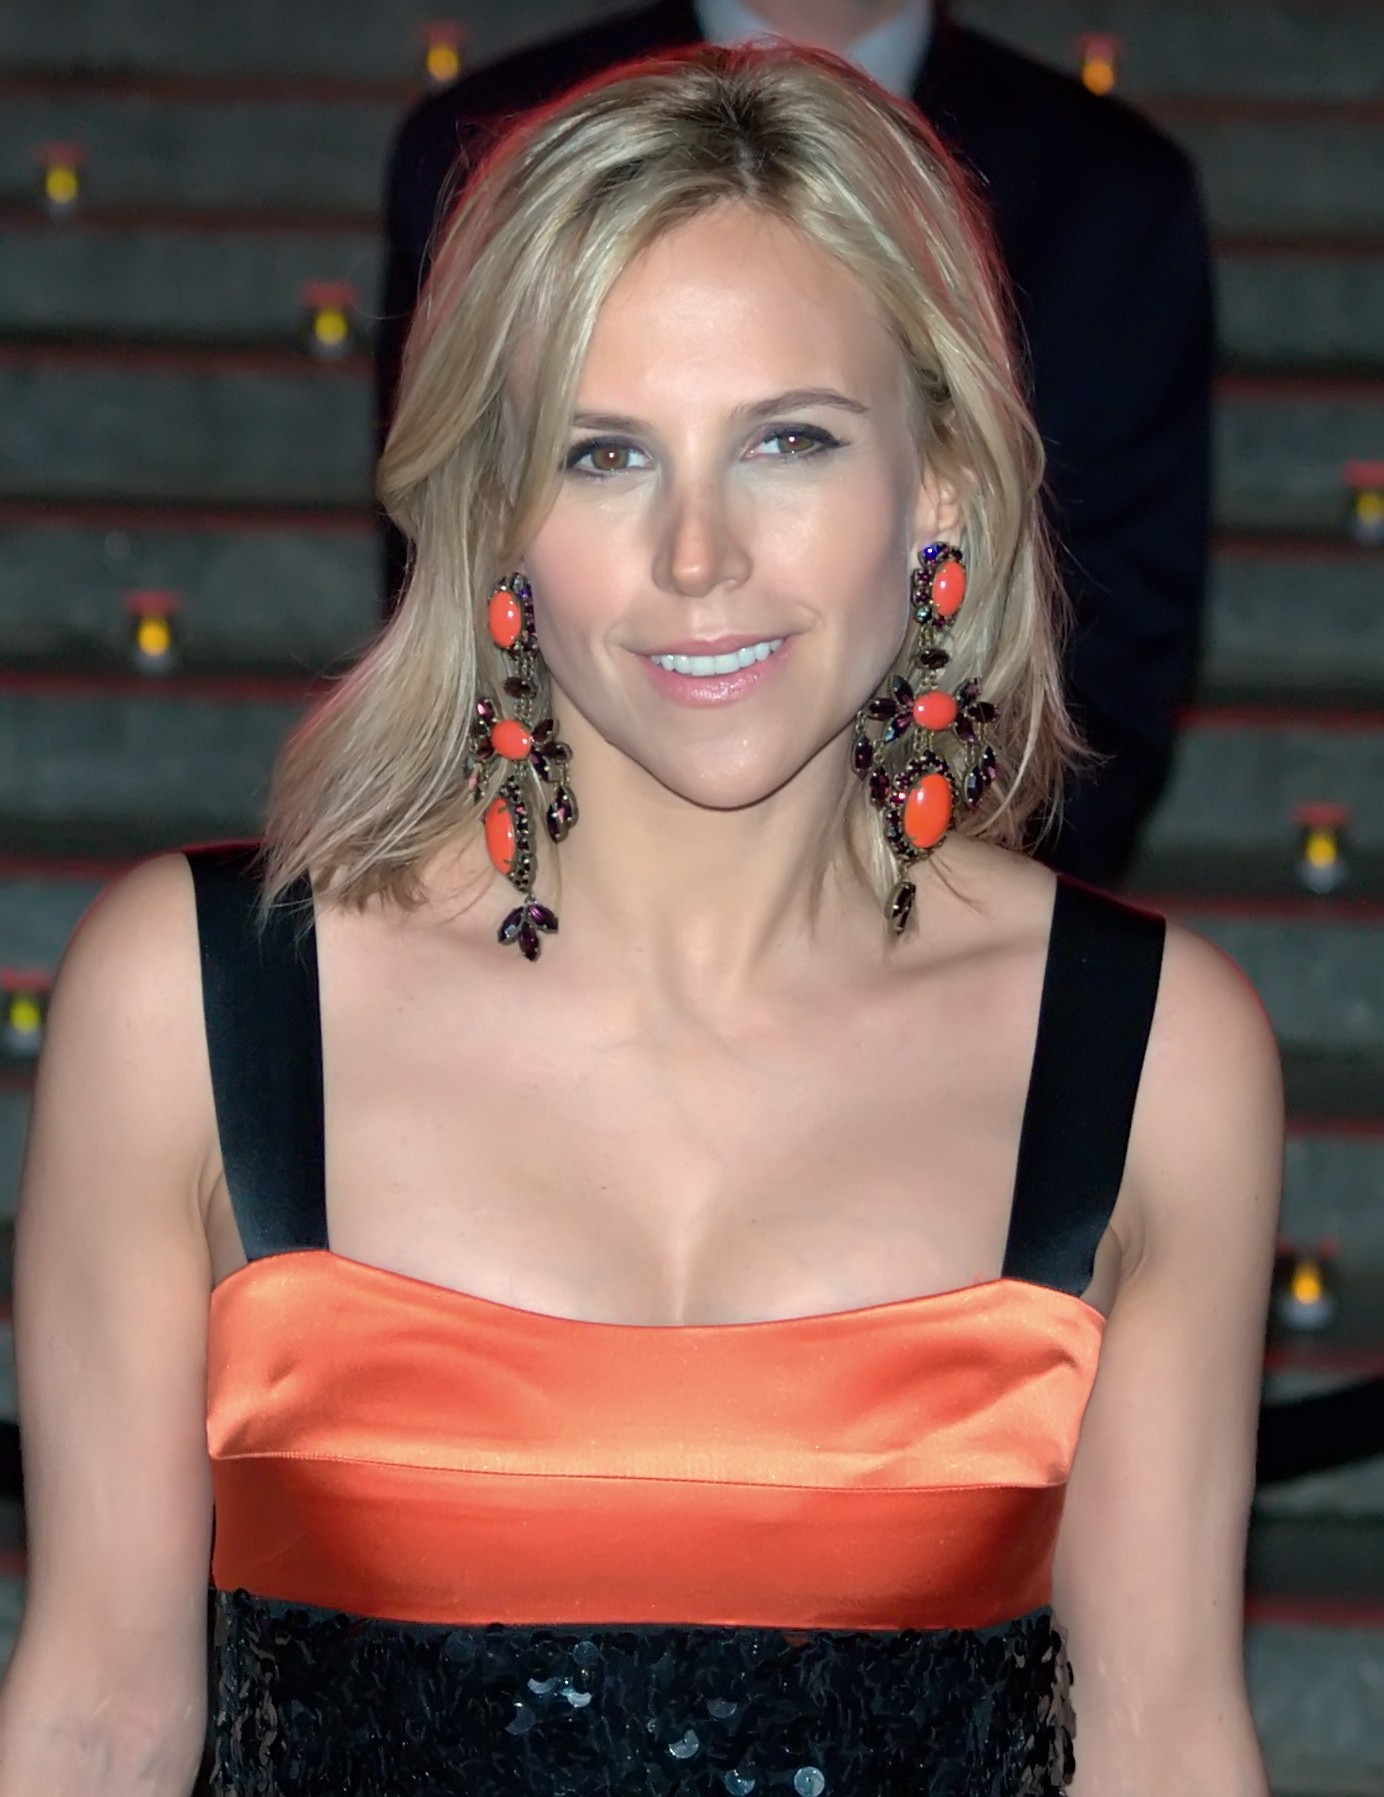 File:Tory Burch 2 Shankbone 2009 Vanity Fair.jpg - Wikimedia Commons